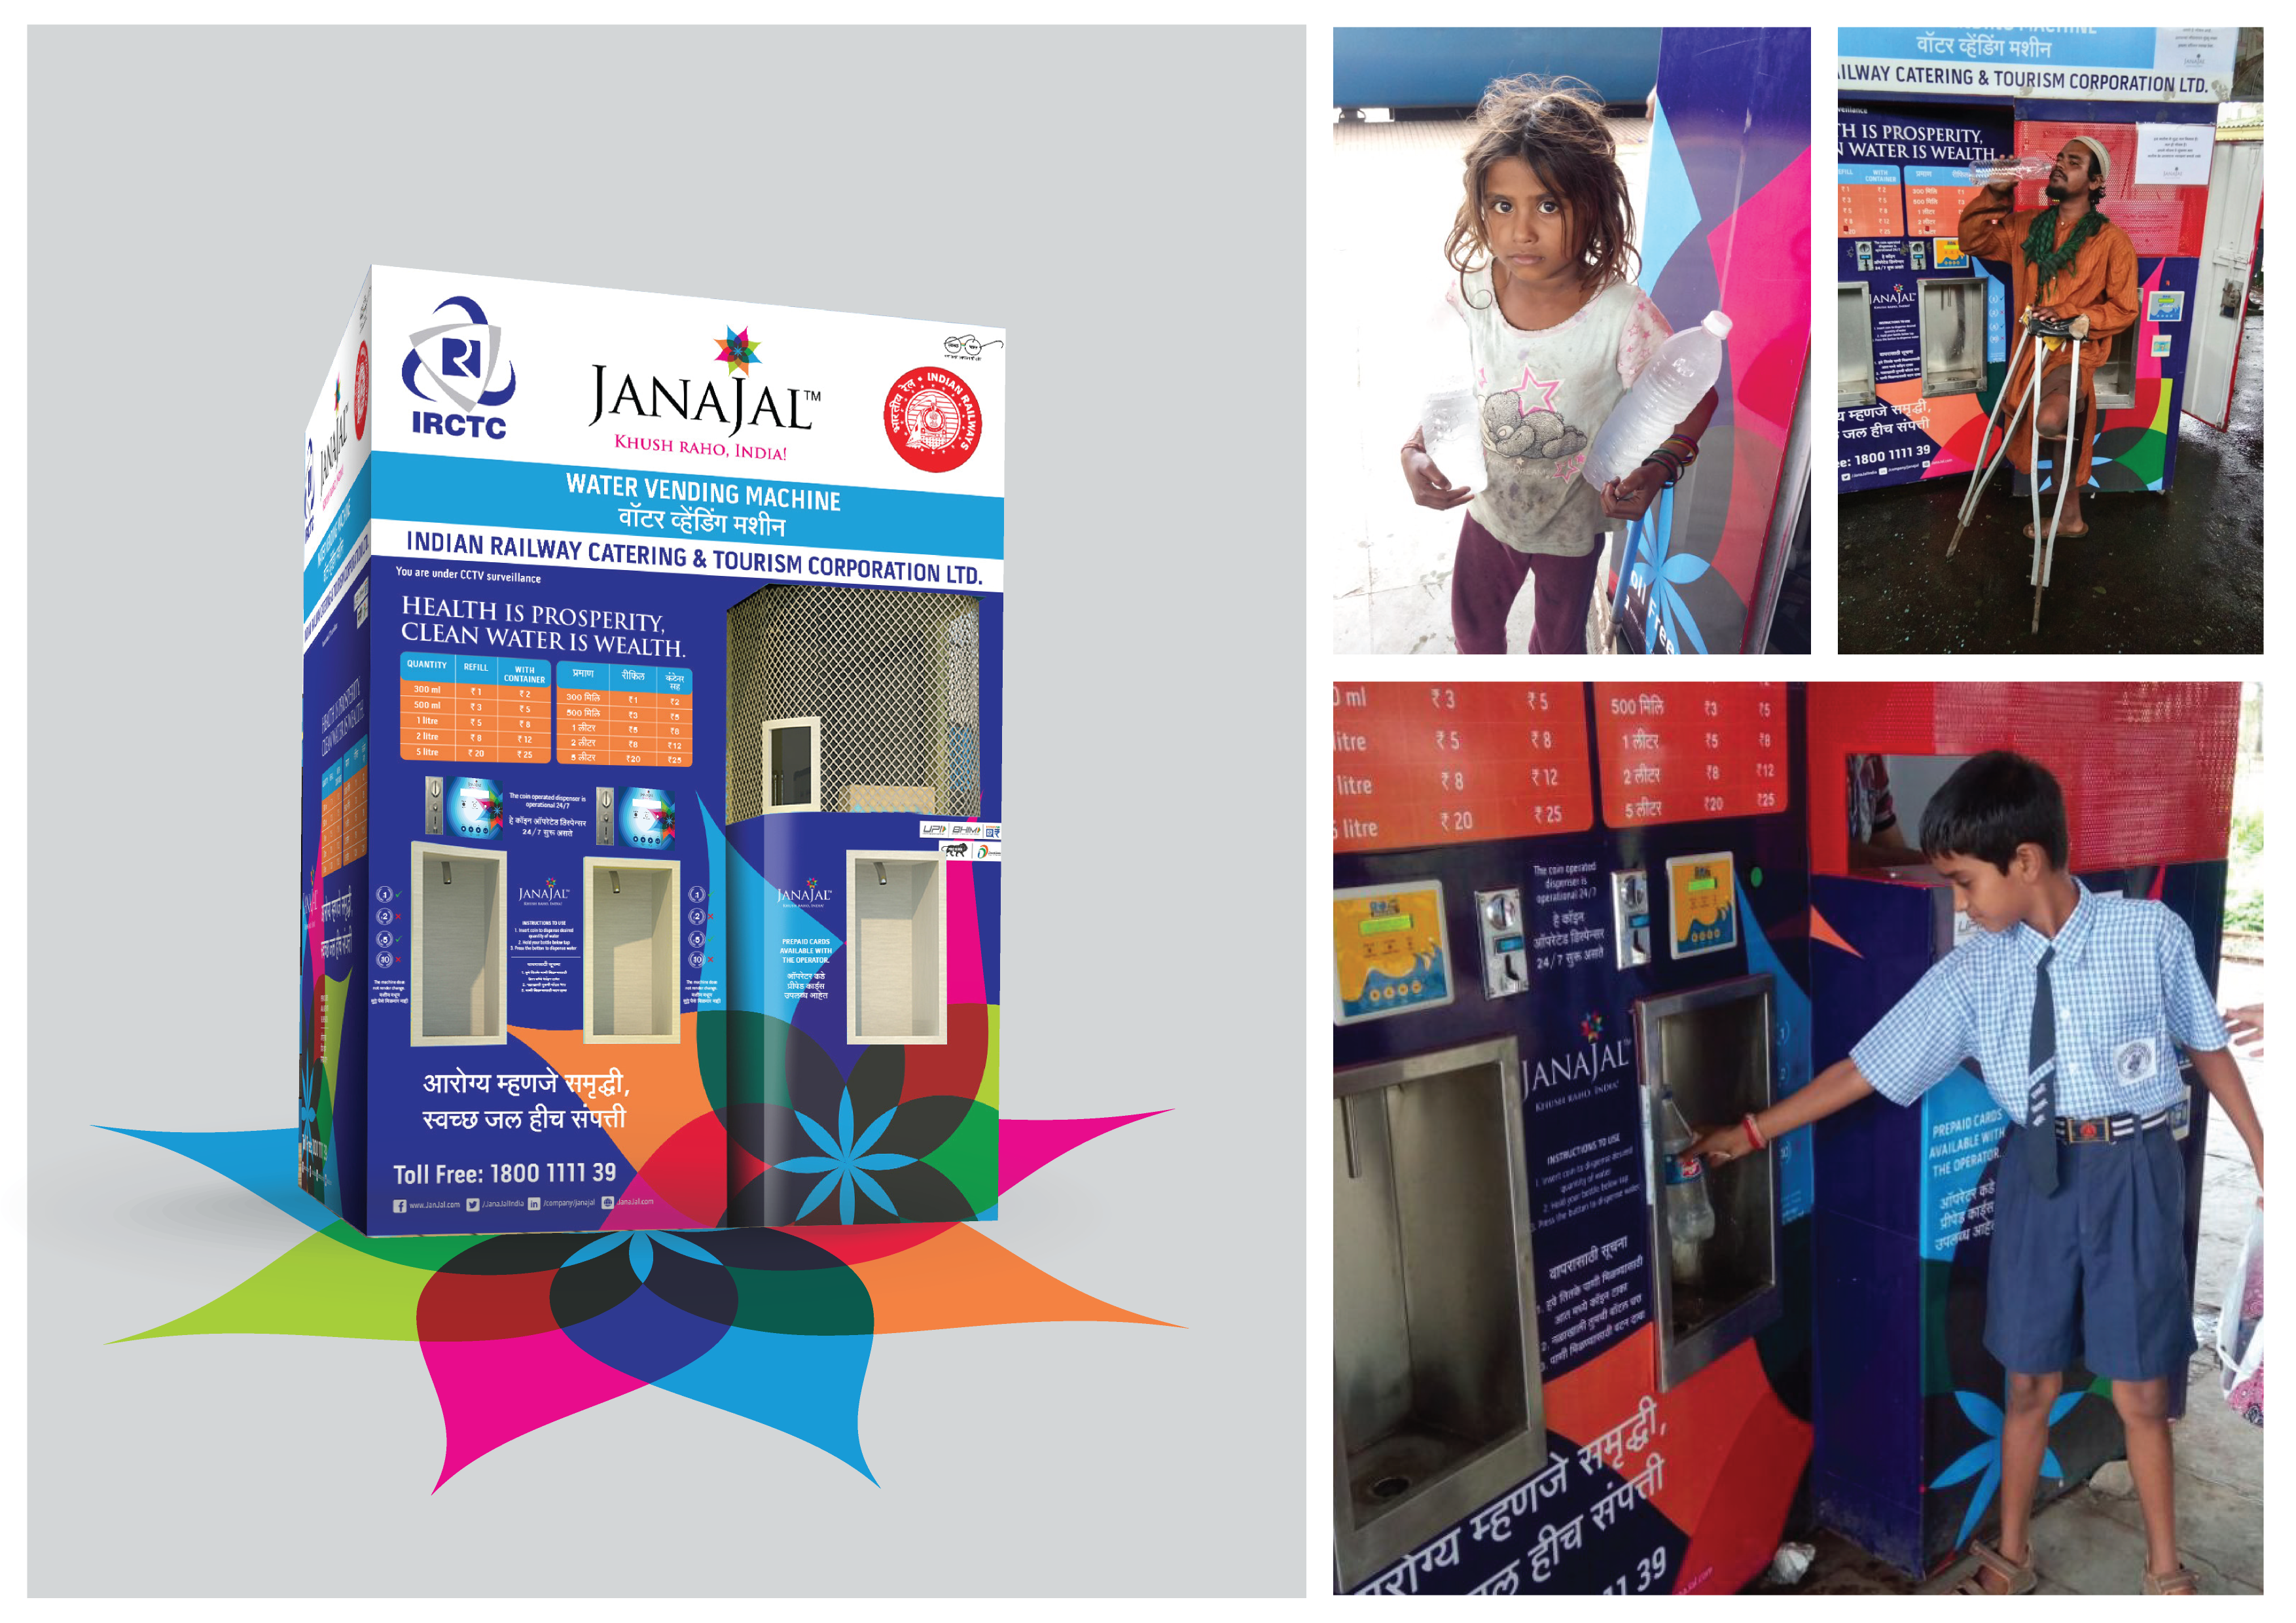 JanaJal commissions Water ATMs in association with IRCTC across Mumbai